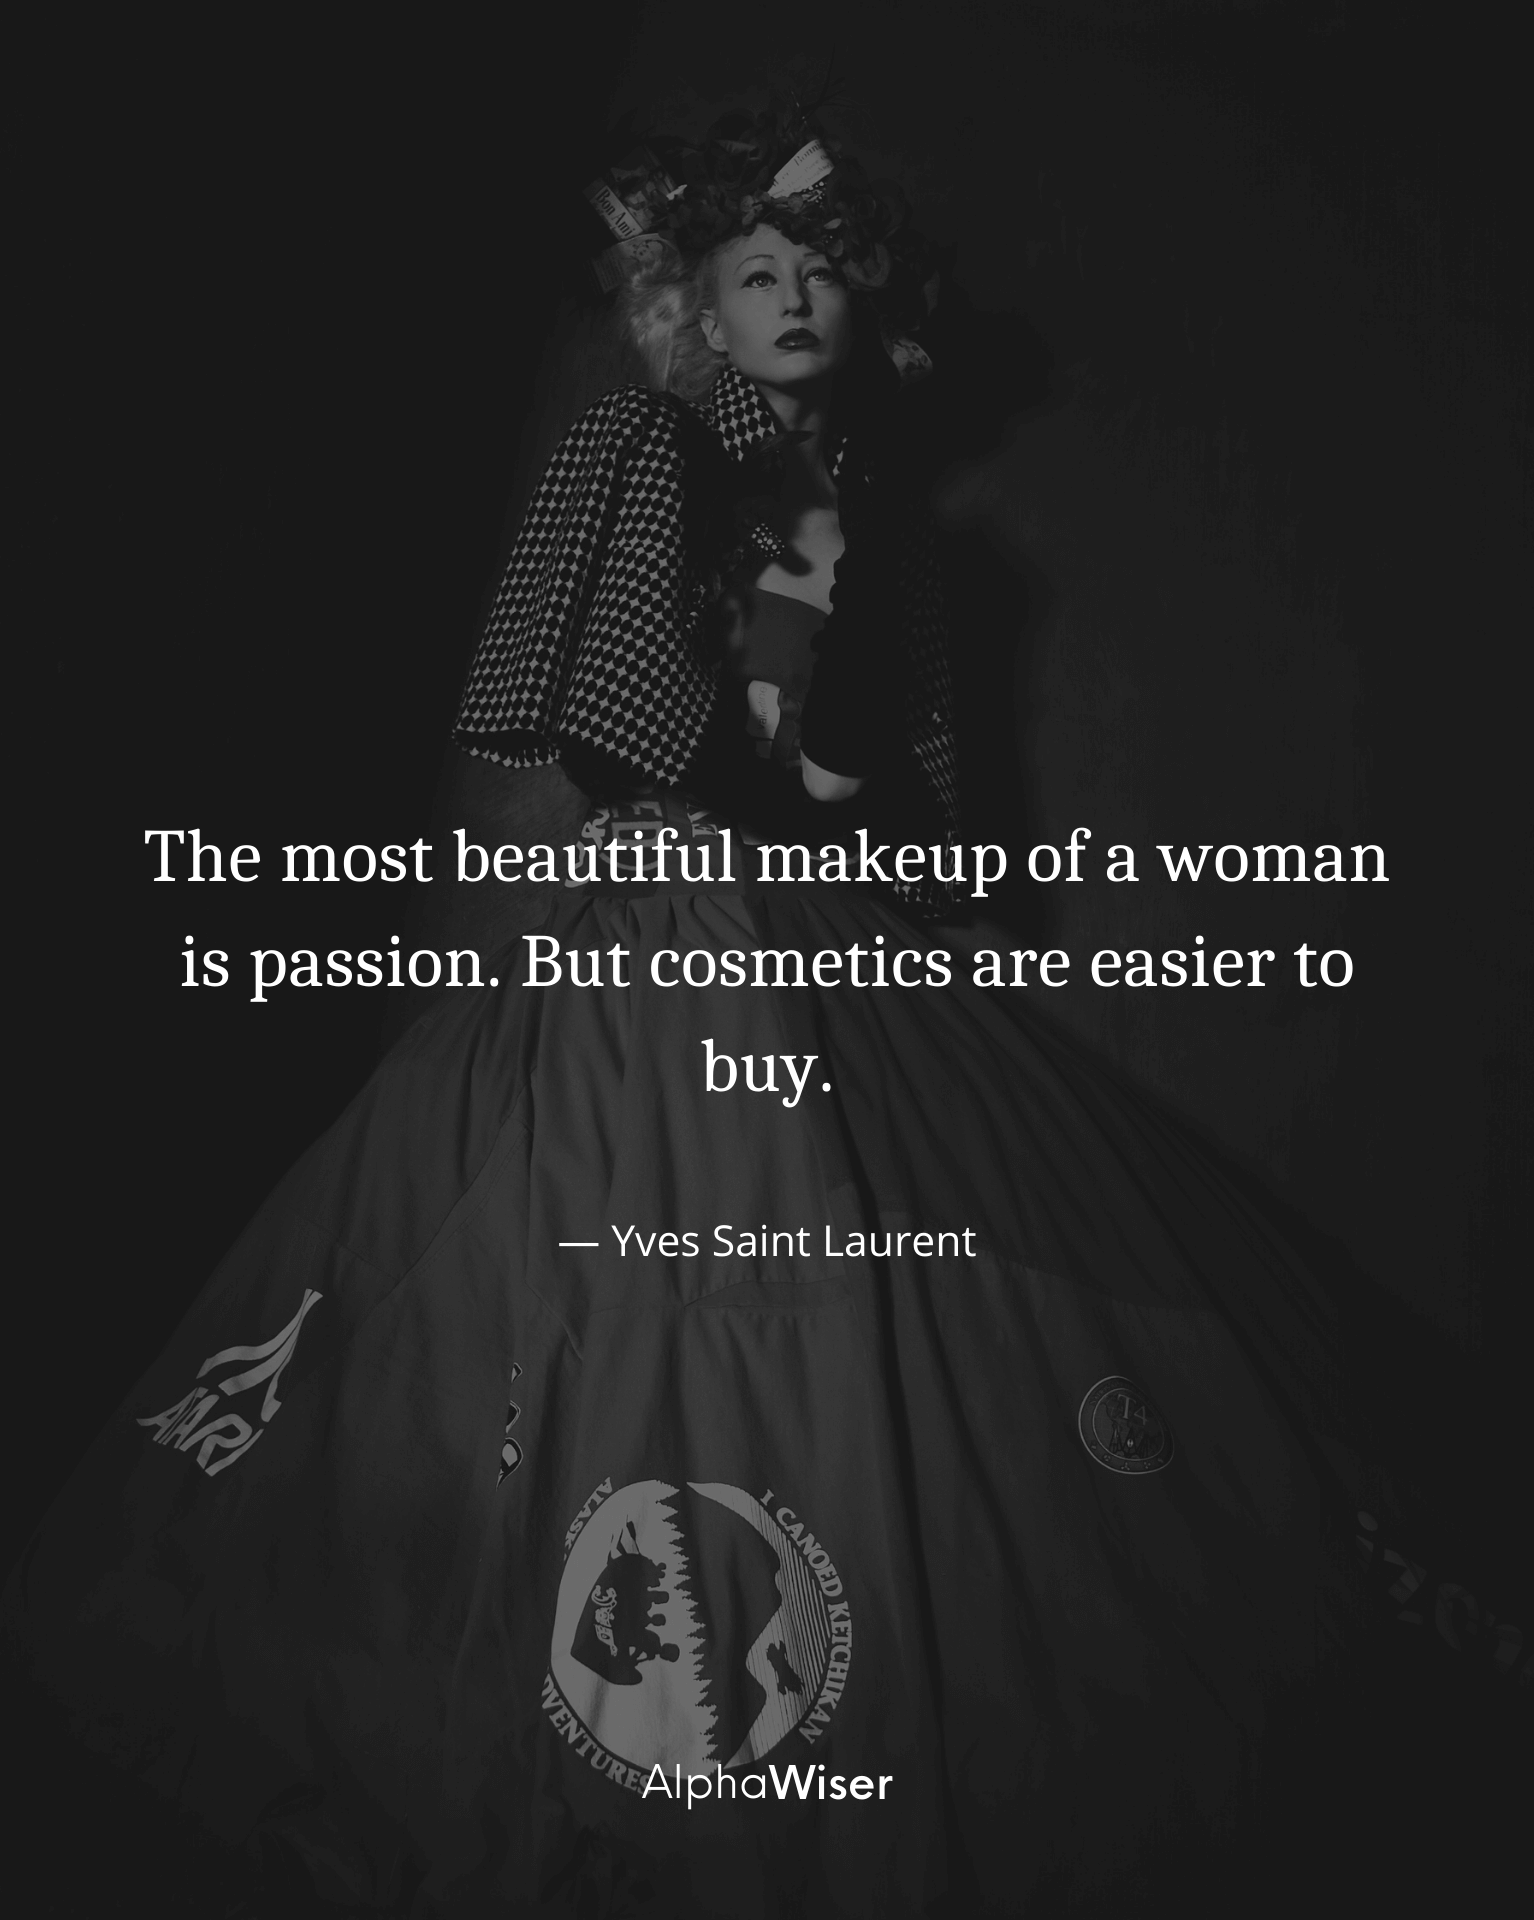 The most beautiful makeup of a woman is passion. But cosmetics are easier to buy.